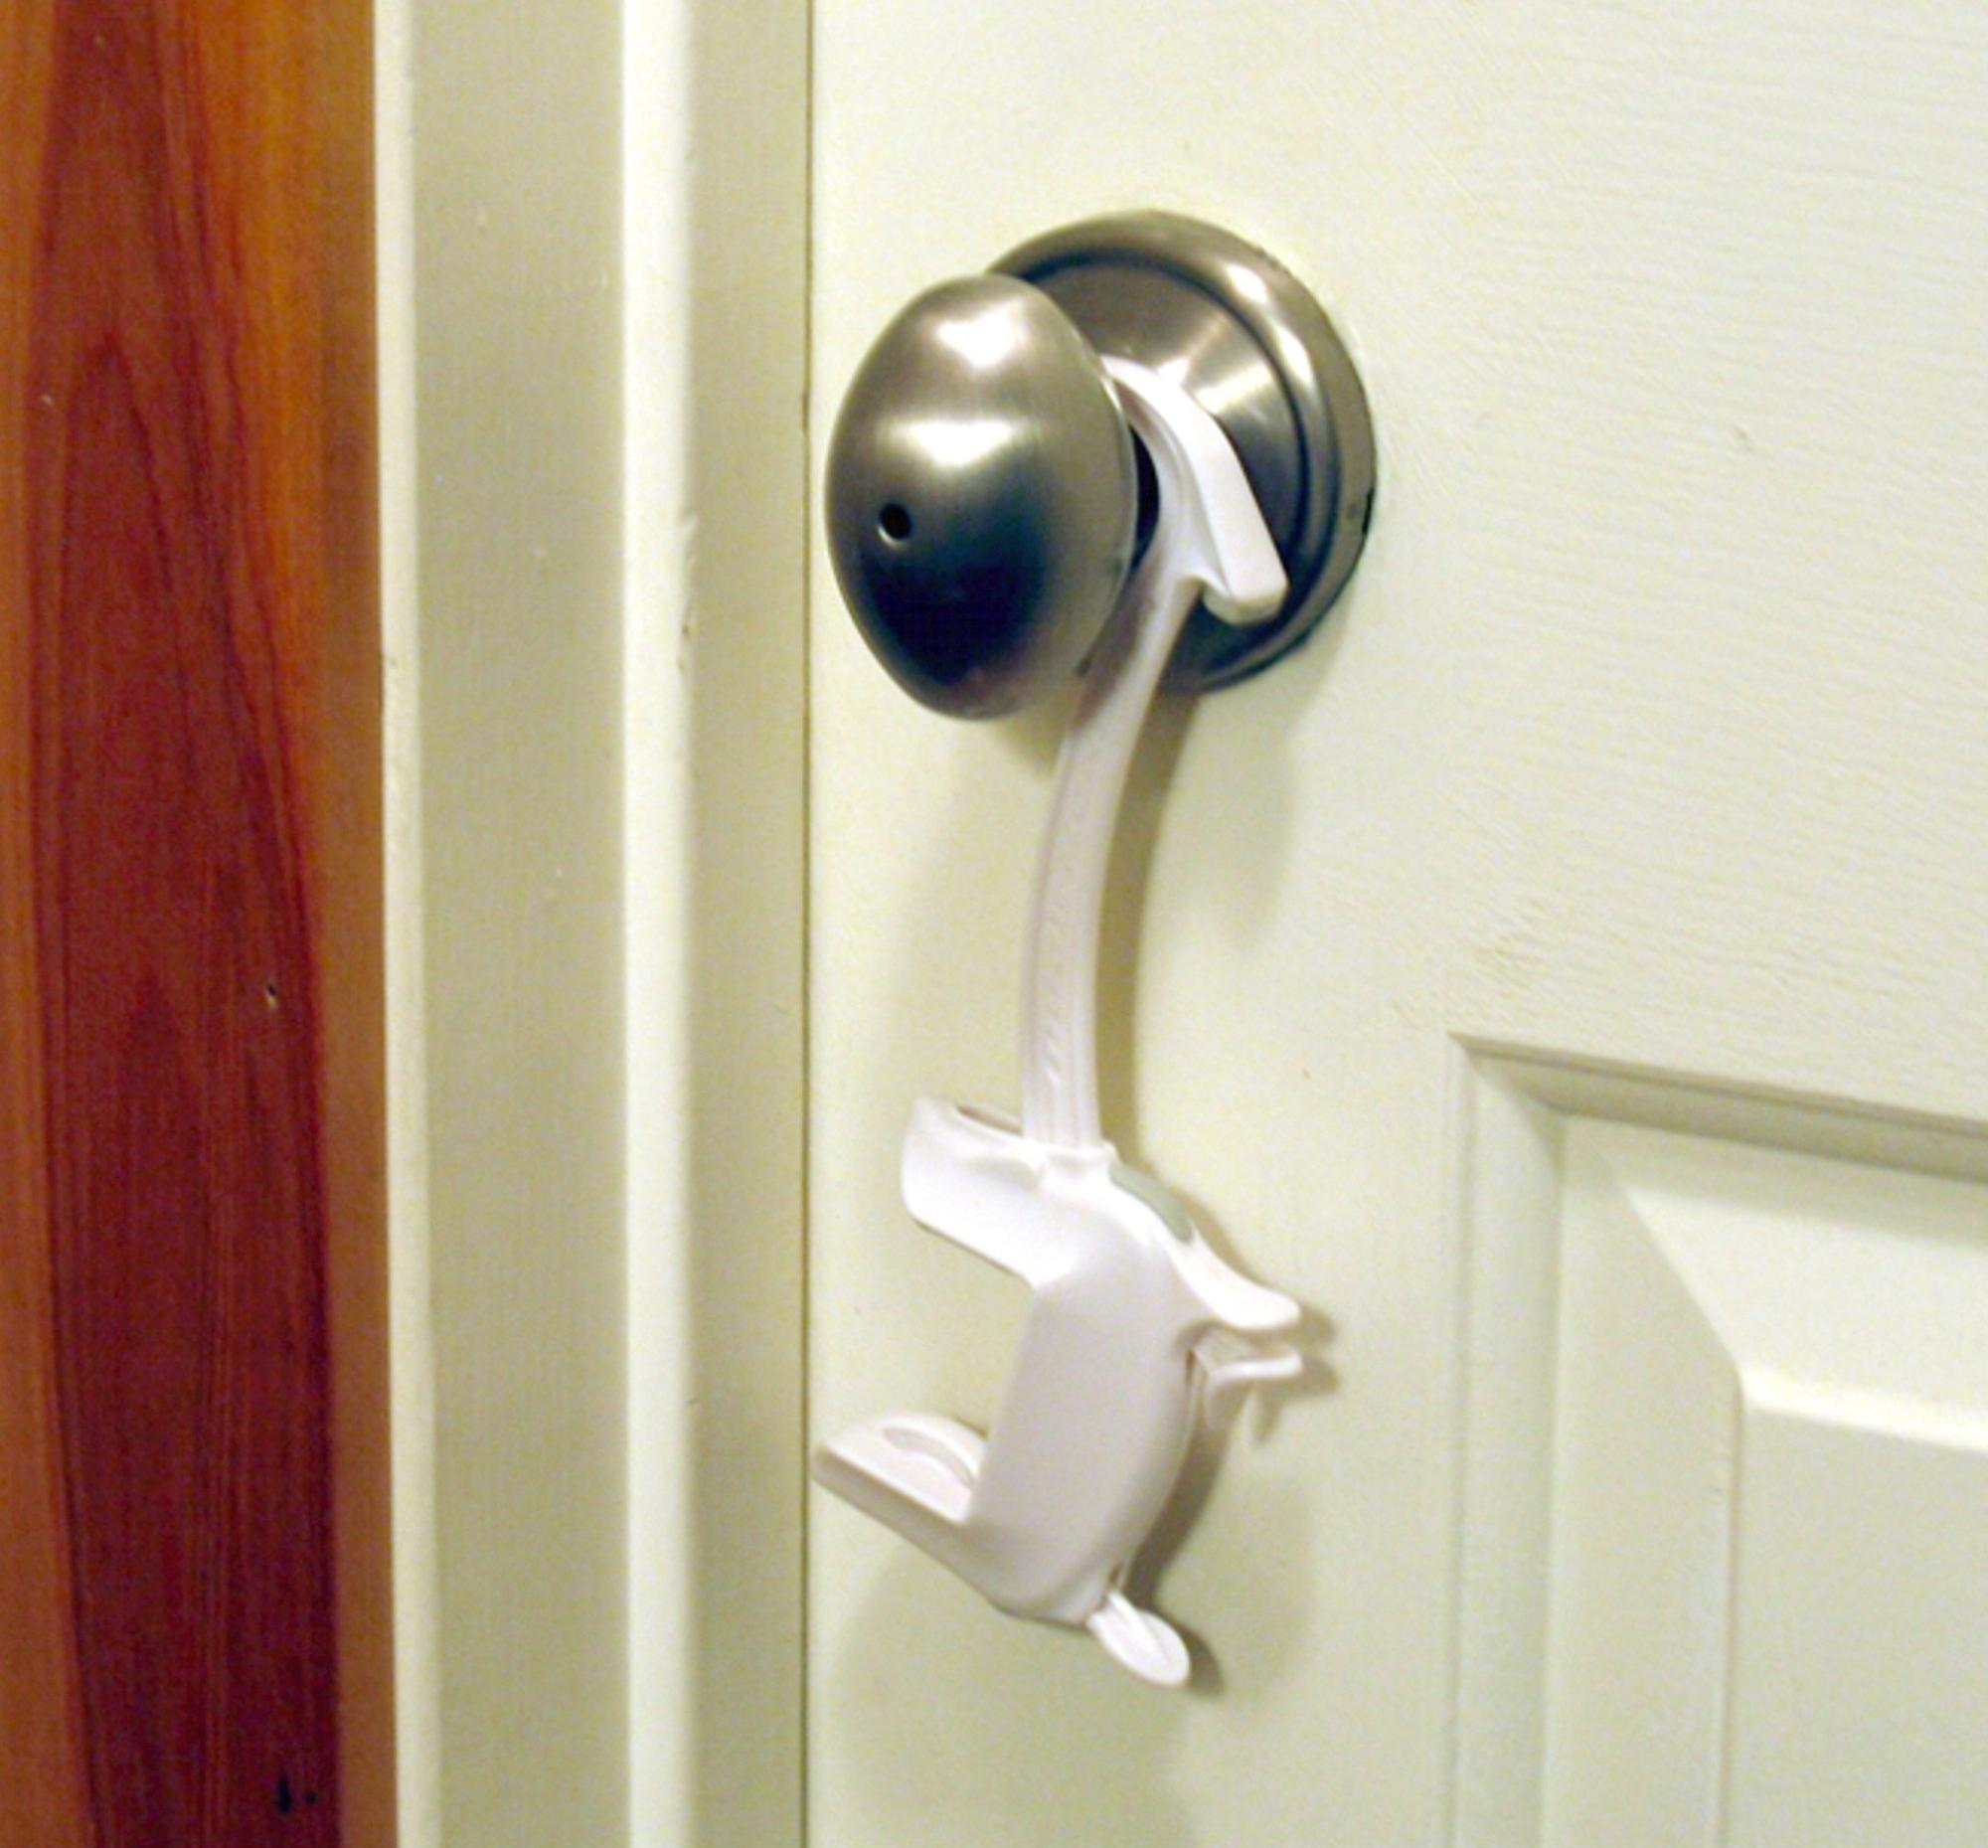 child safety door knob photo - 12